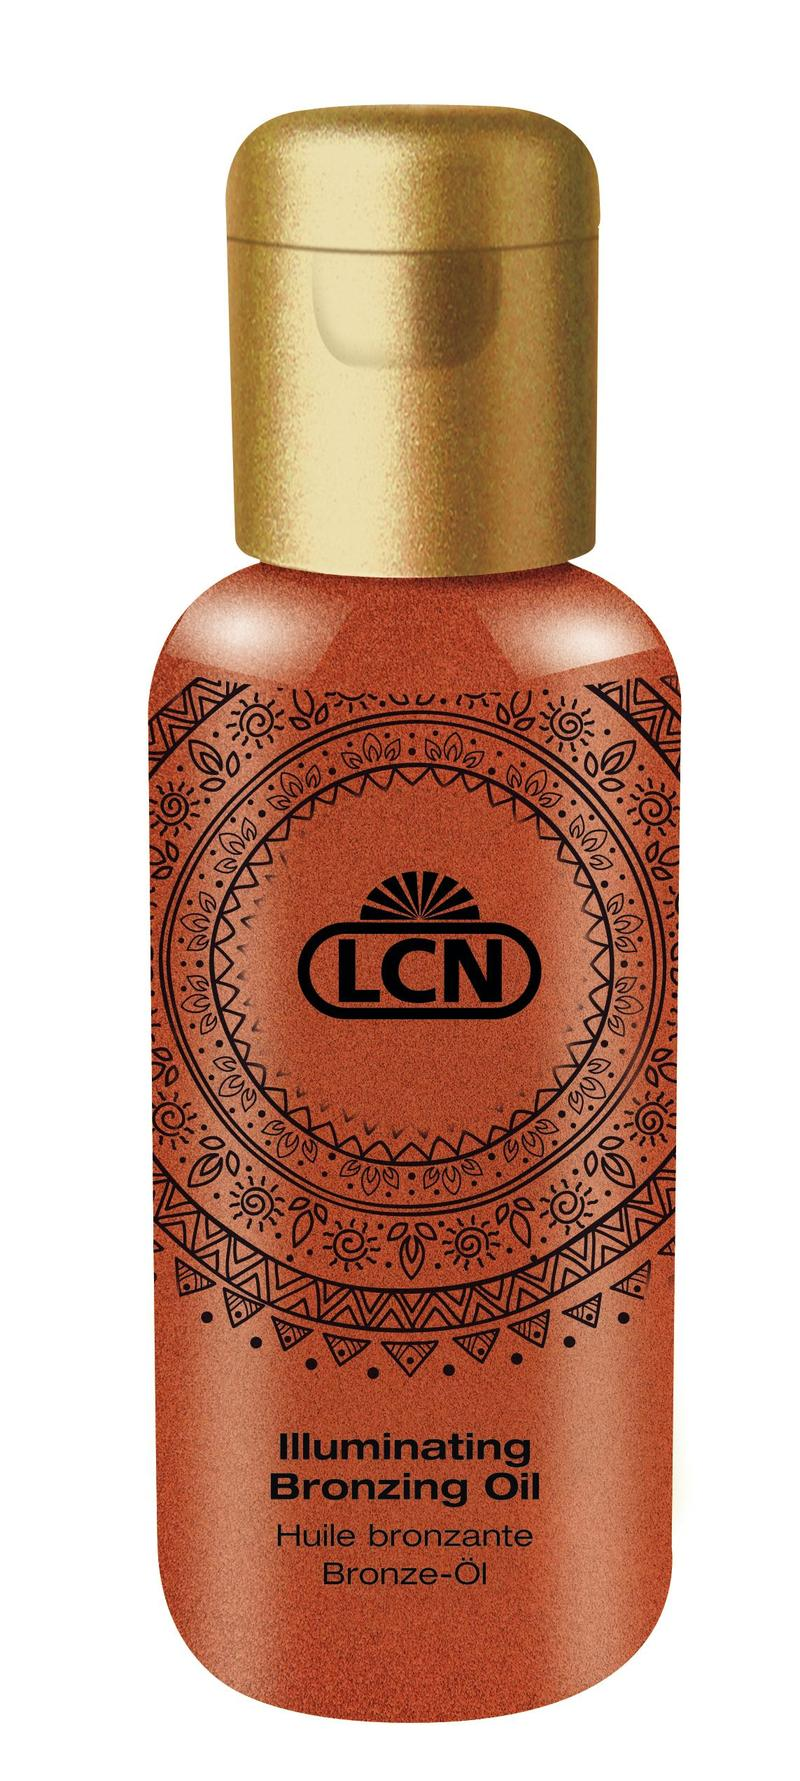 Illuminating Bronzing Oil, 50ml